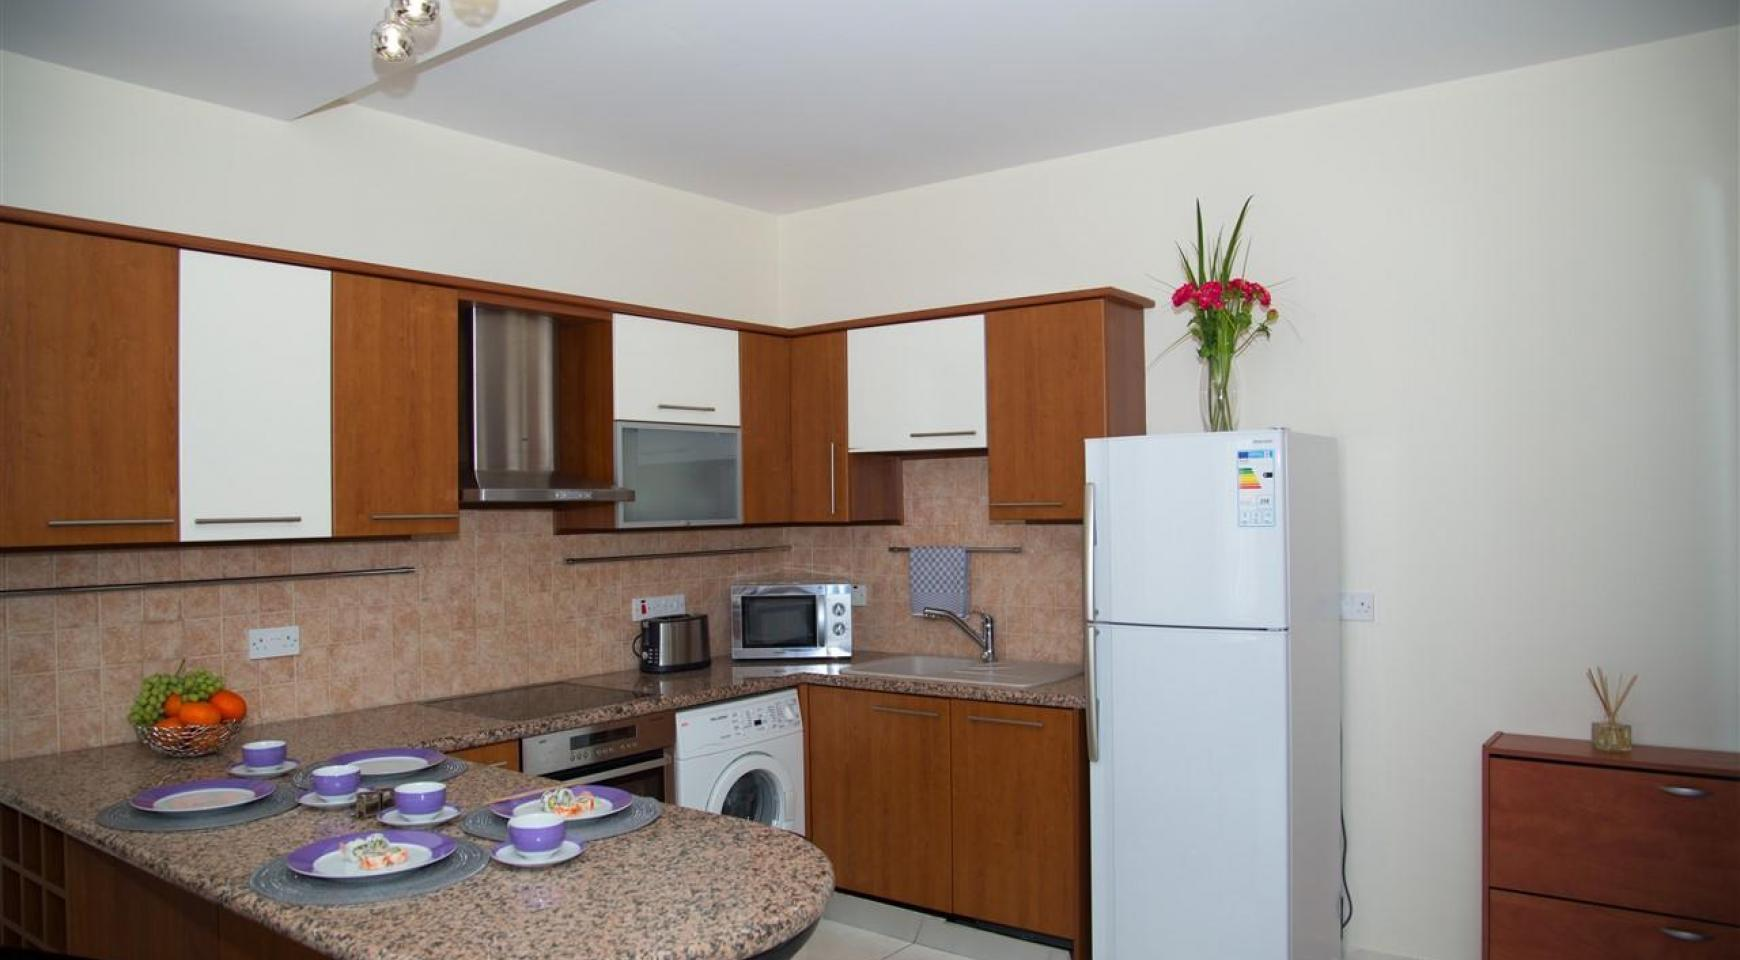 2 Bedroom Apartment in the Complex near the Sea - 11